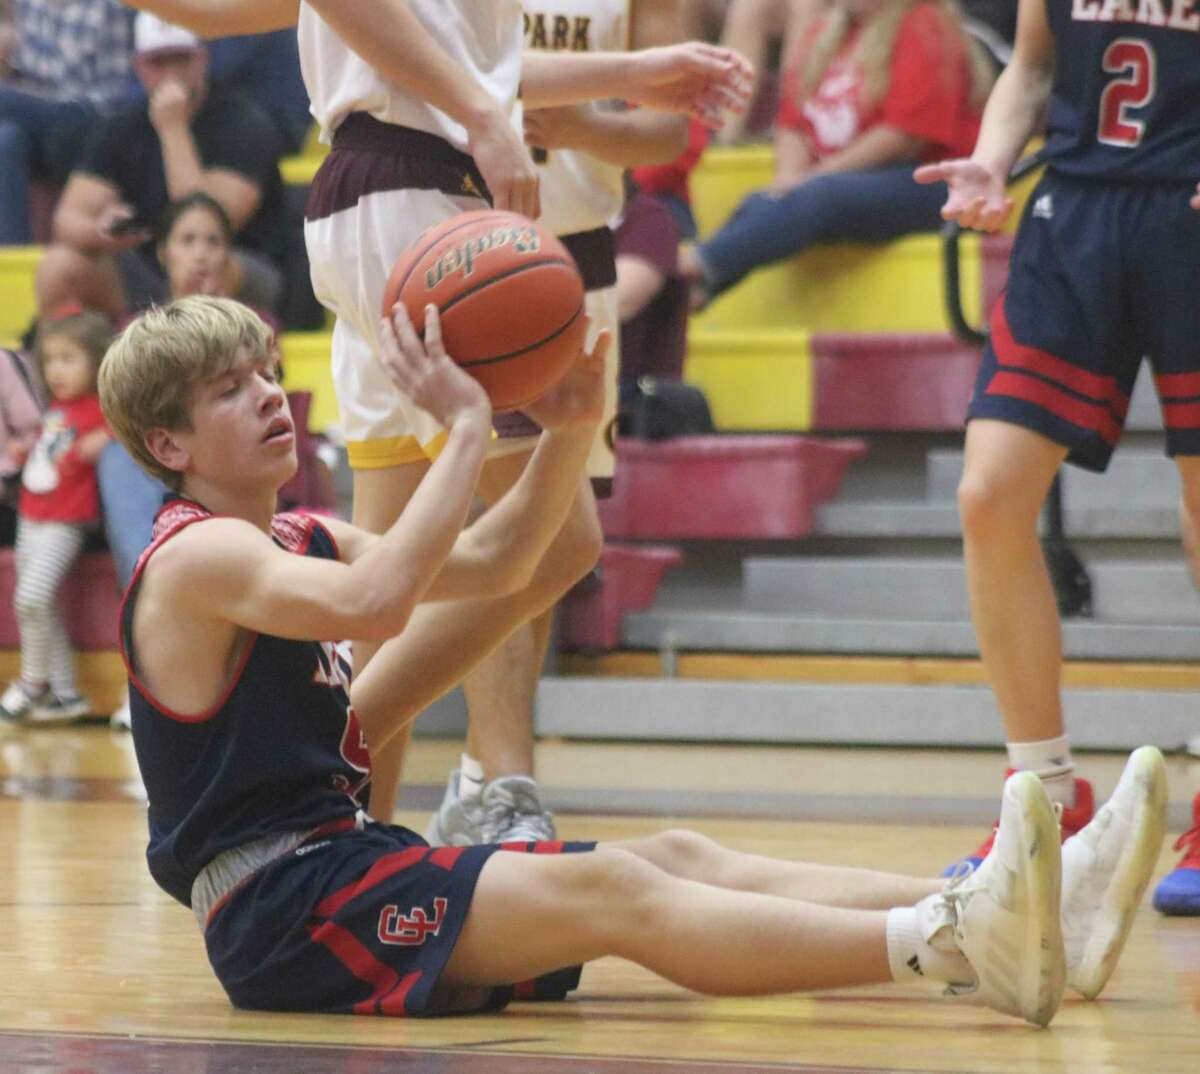 Clear Lake's Josh Owens surrenders the basketball after he was called for a foul in the Deer Park contest on Friday.